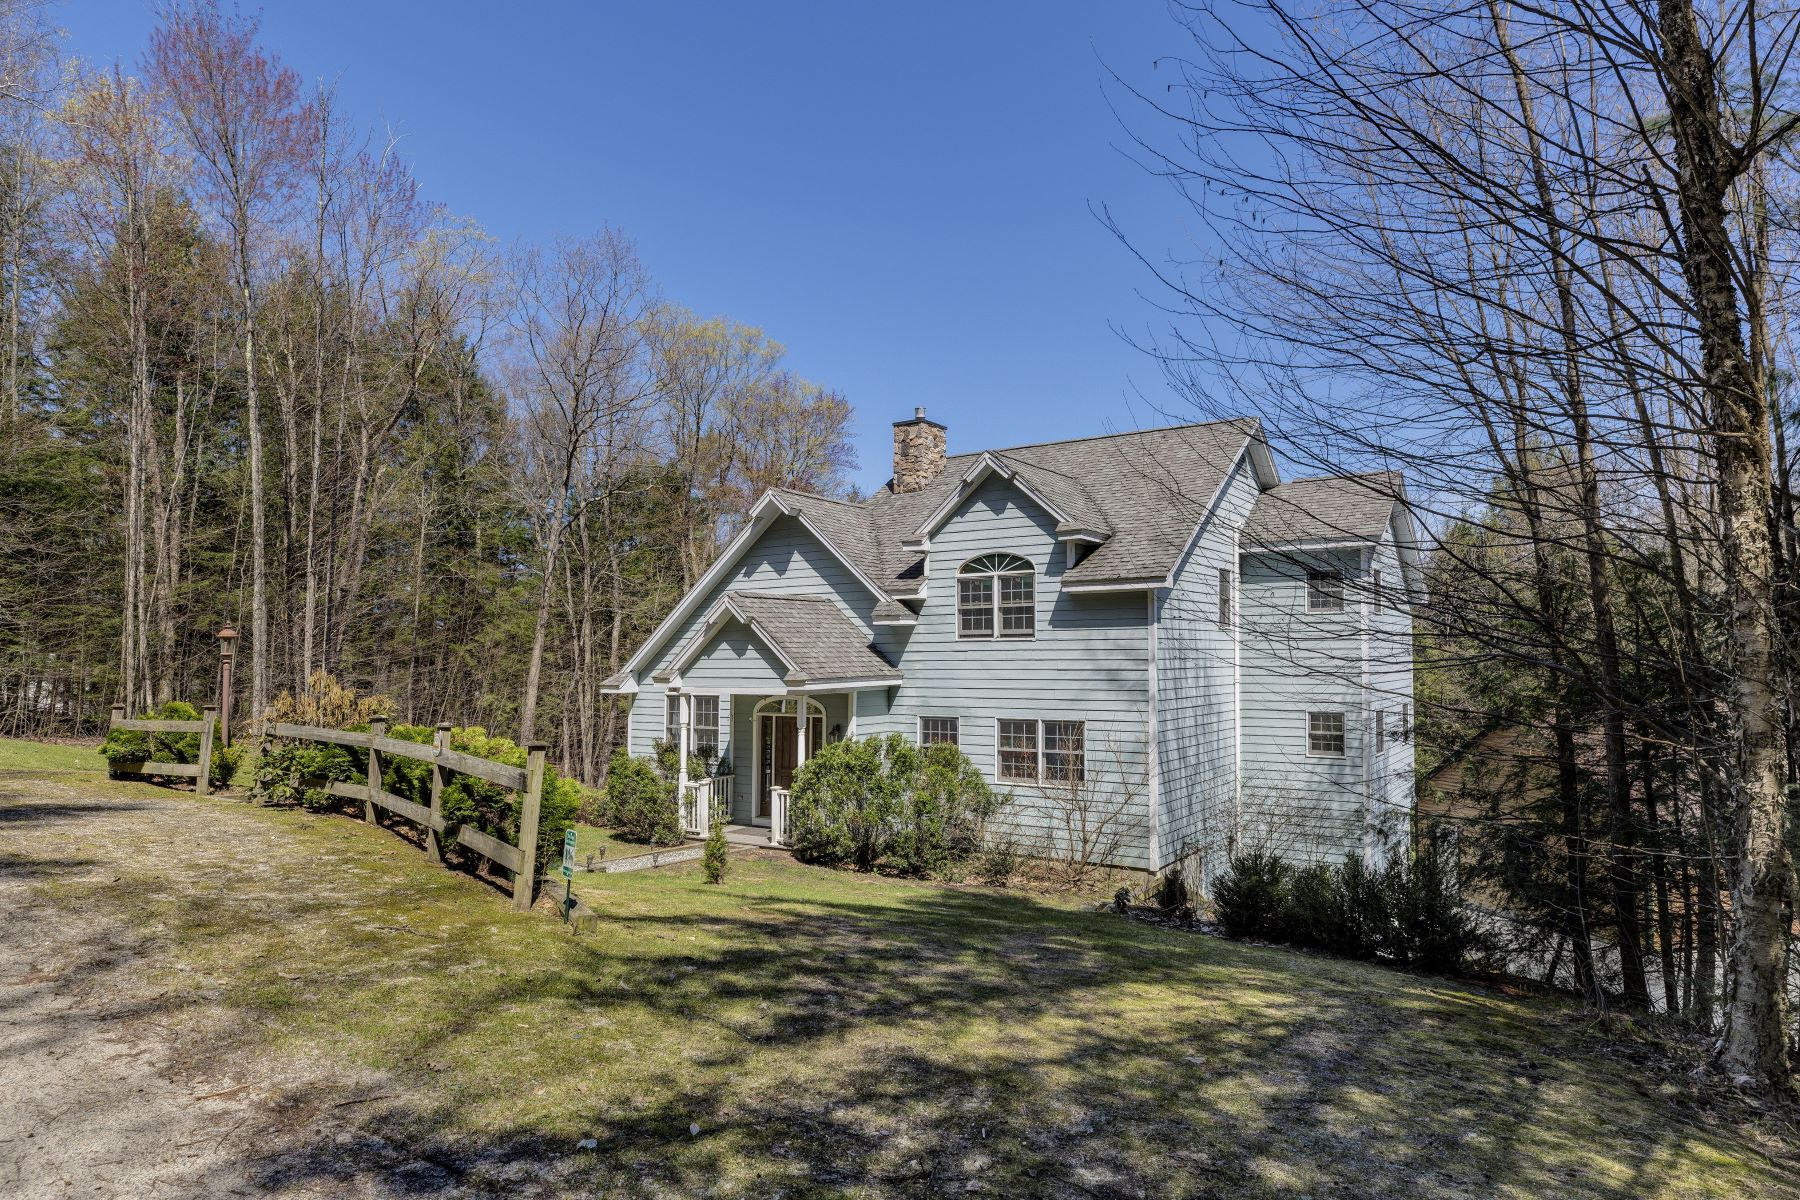 Single Family Home for Sale at Three Bedroom Contemporary in Cornish 77 Sunset Strip Rd Cornish, New Hampshire 03745 United States